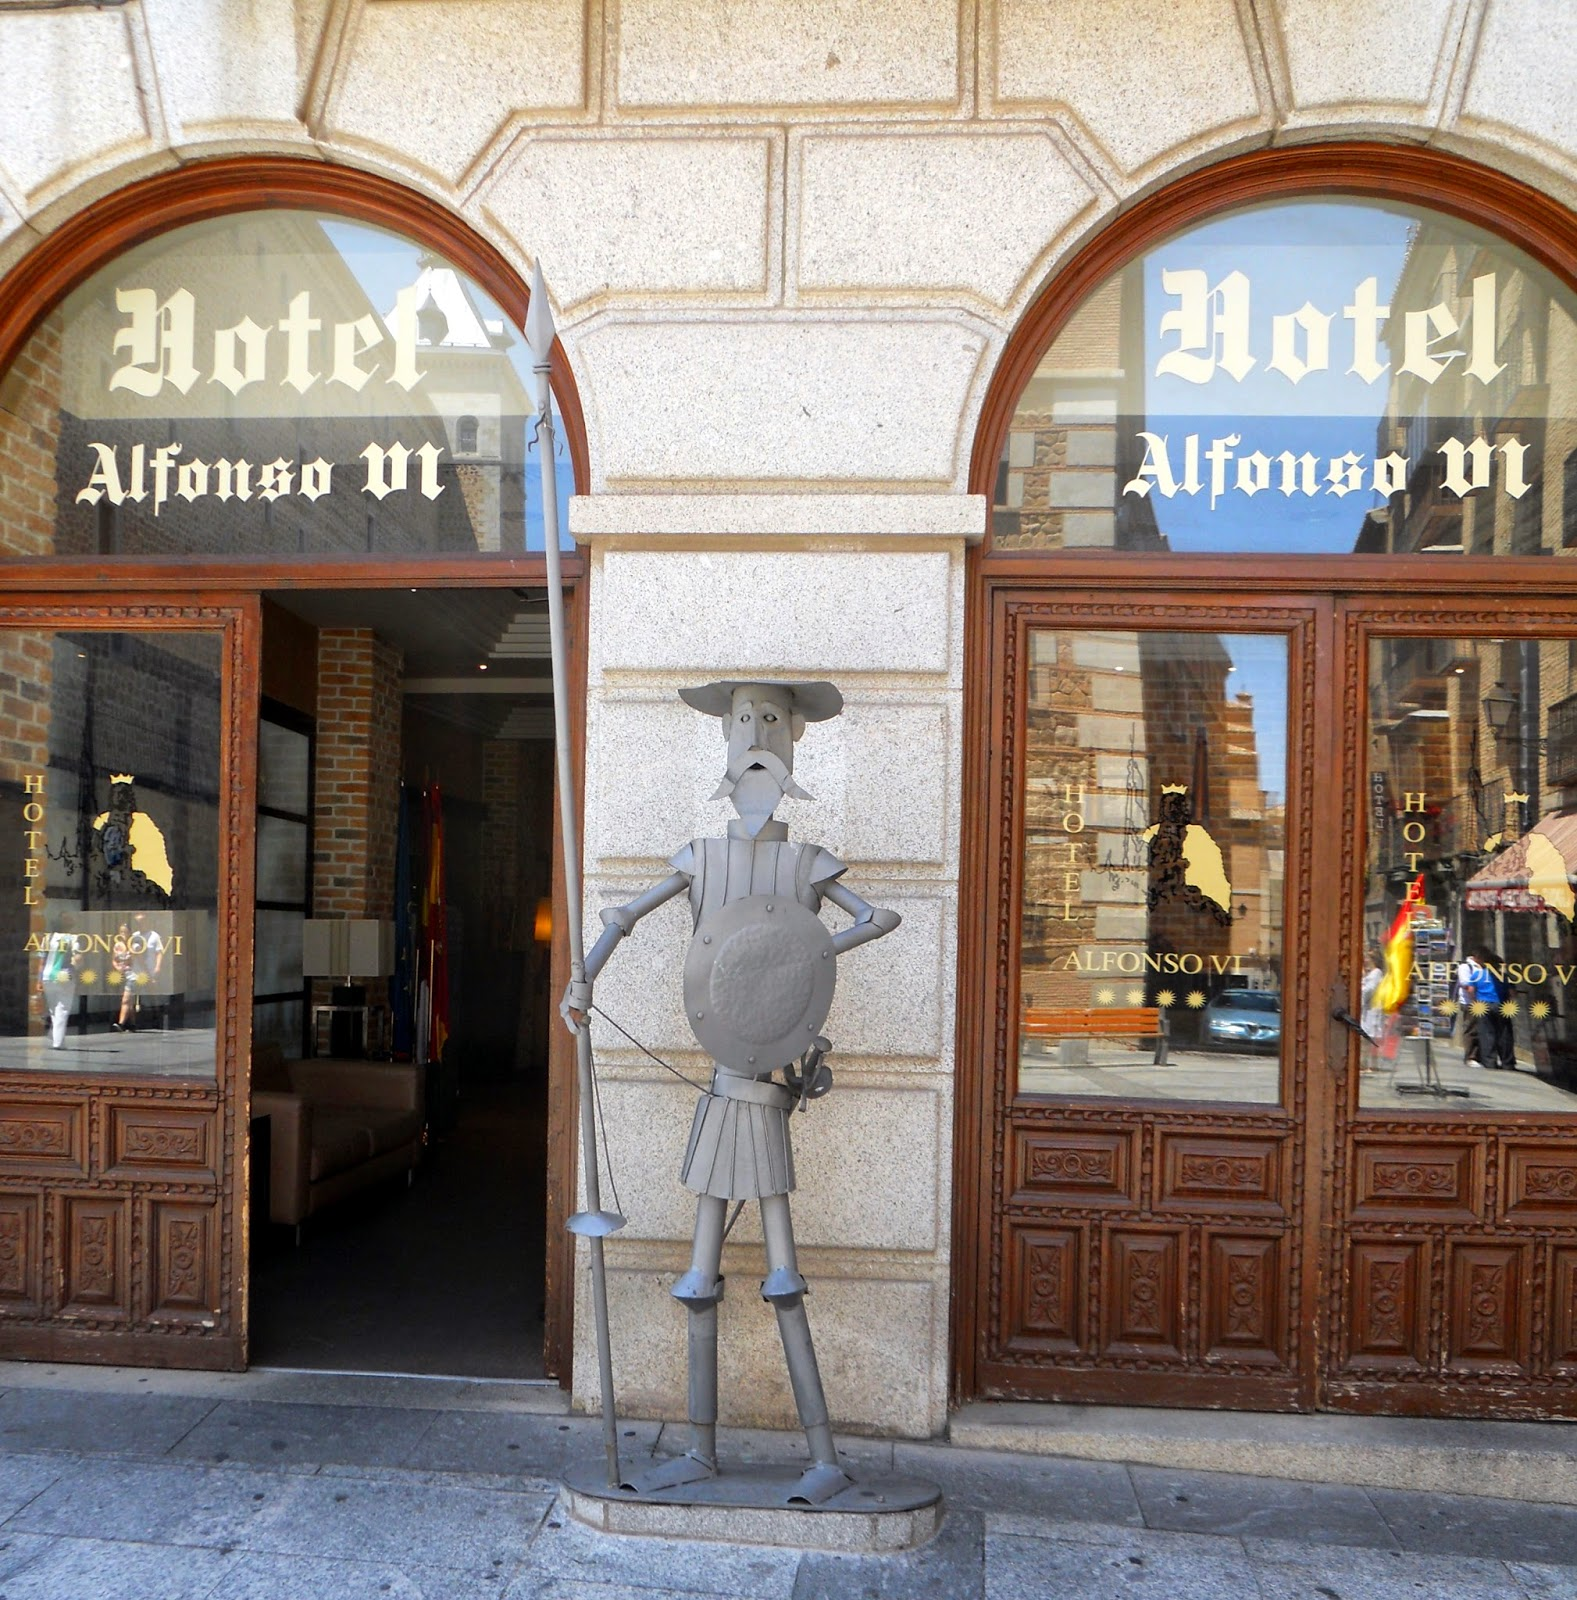 A metal sculpture of Don Quixote at the entrance to the Hotel Alfonso VI, Toledo